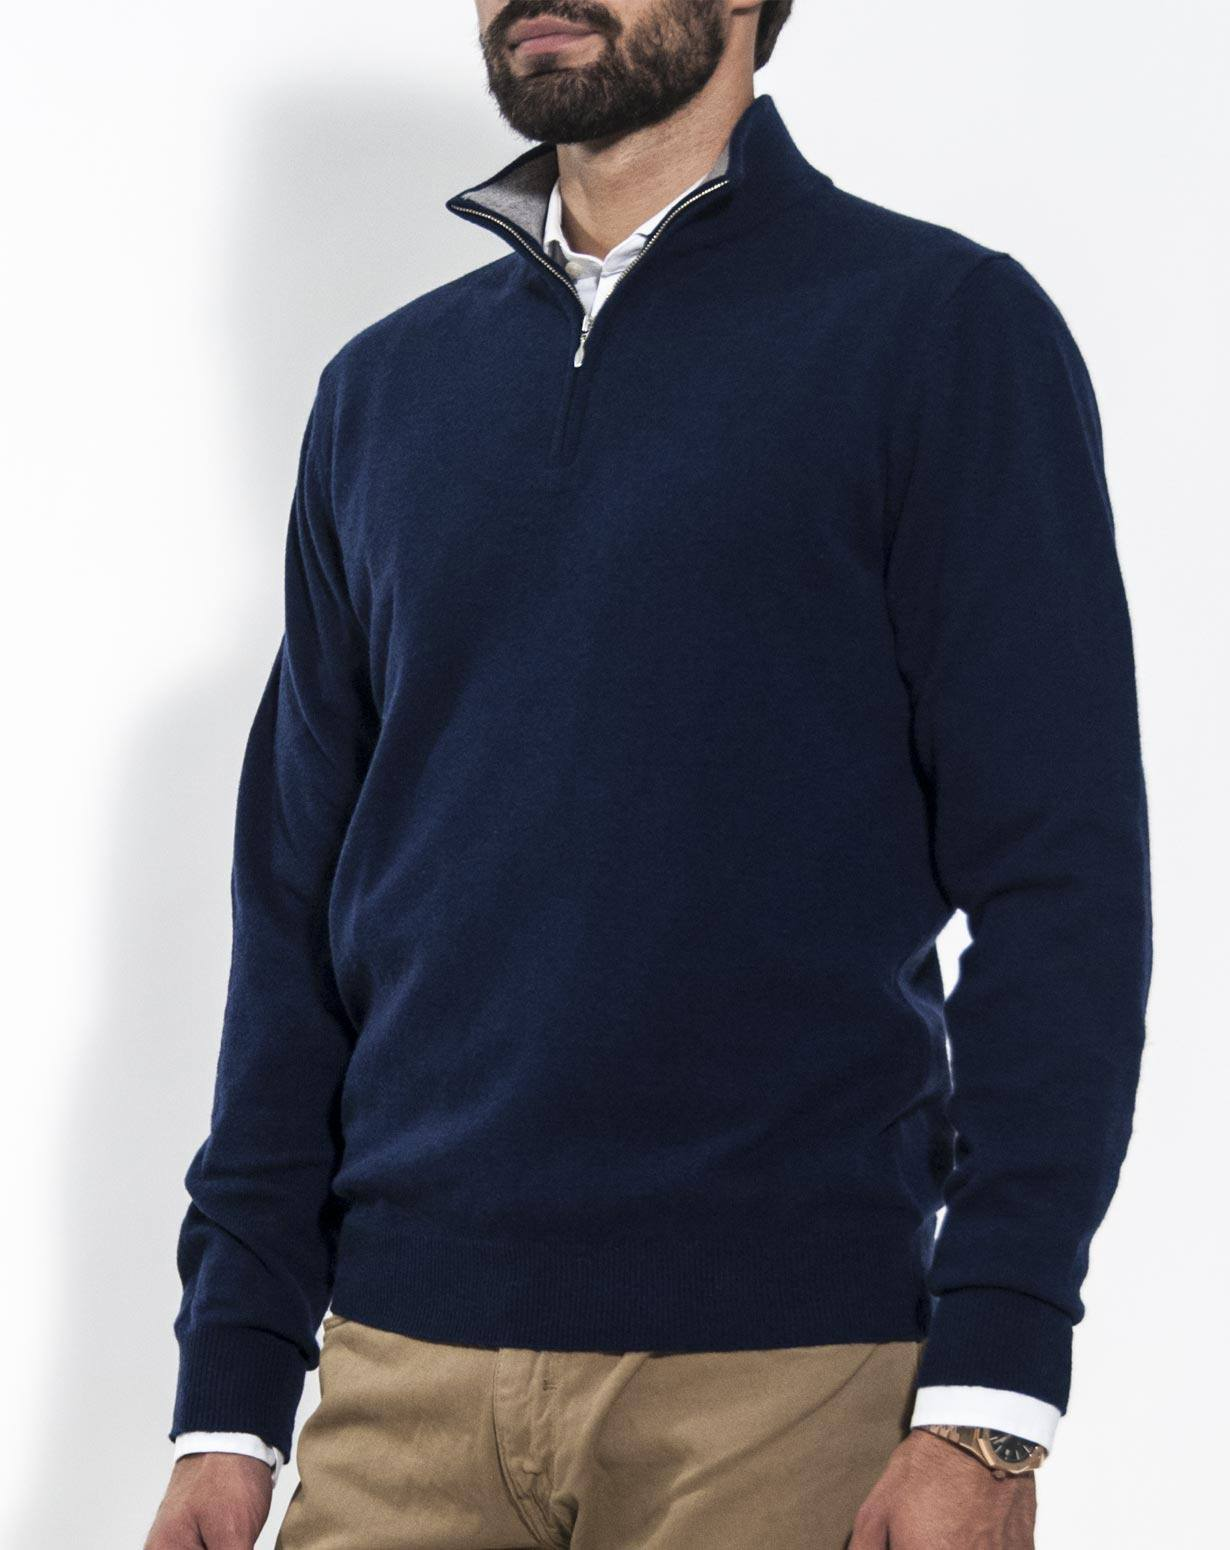 Discover the range of men's knitwear with ASOS. Choose from men's jumpers, pullovers and cardigans in a range of styles and colours. Shop now at ASOS. Armani Exchange zip-thru colour block cardigan in navy/black. £ Ted Baker cable knit jumper with shoulder patch detail.